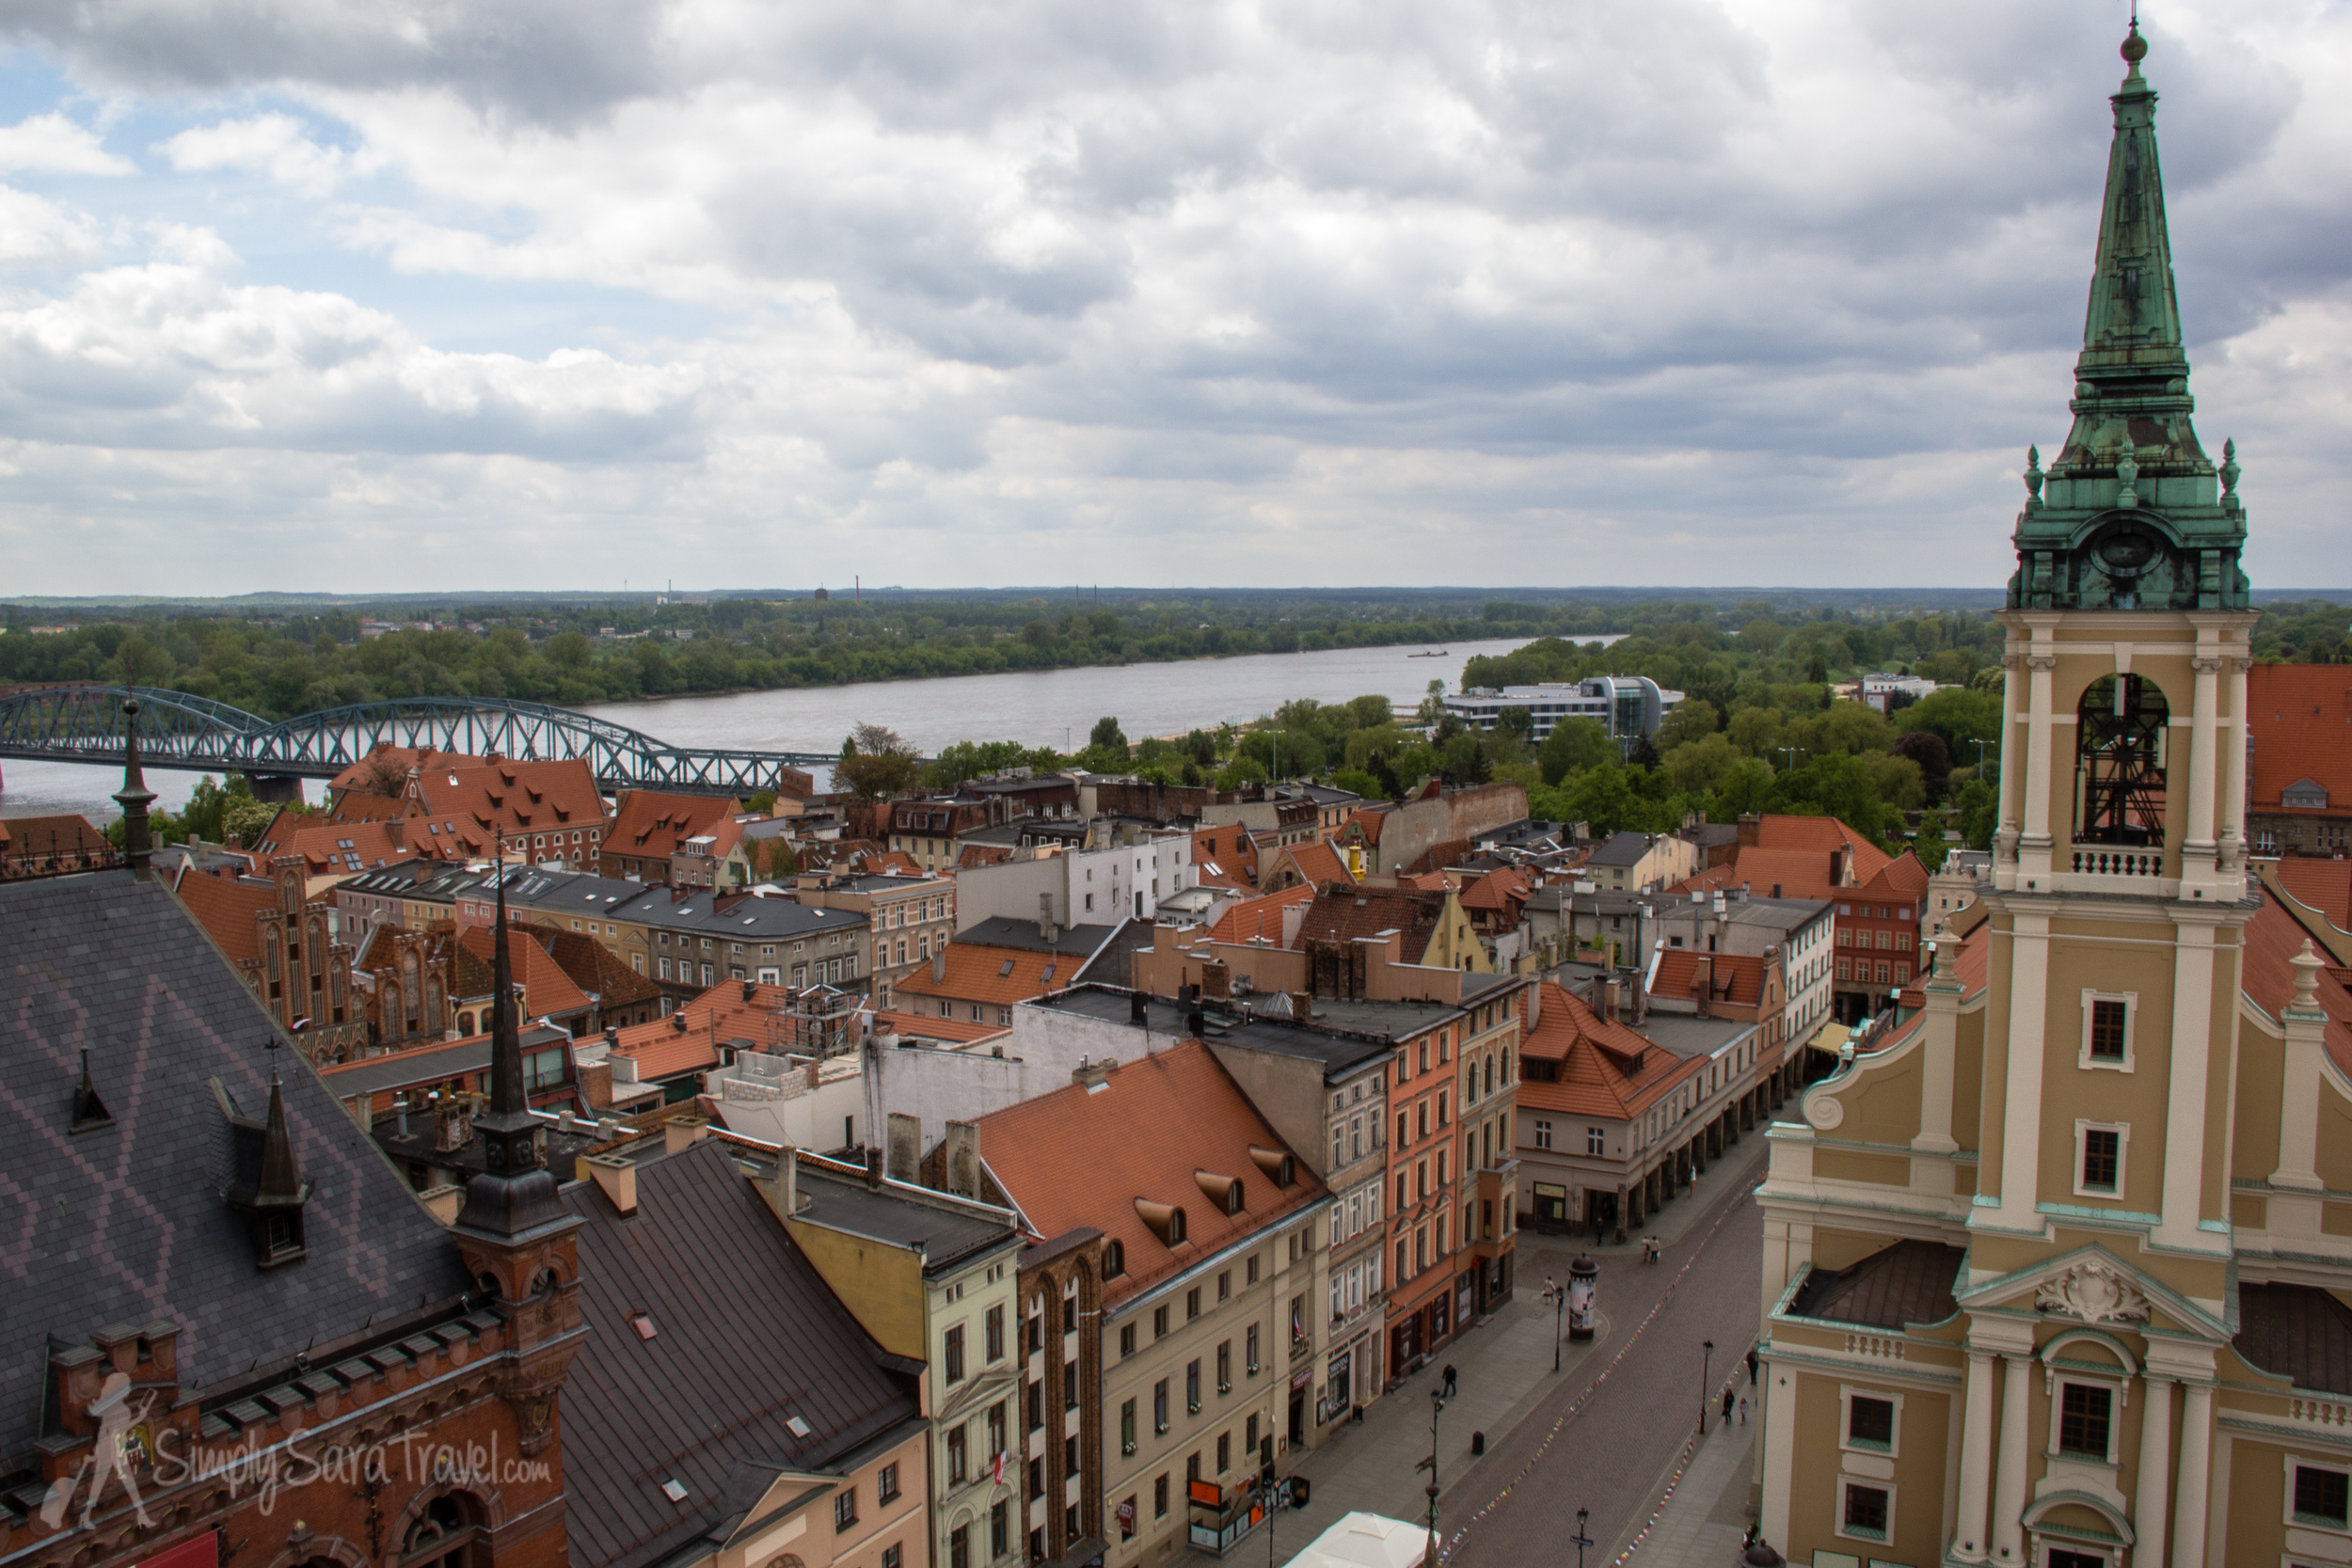 From above you can get a good view of theVistula River